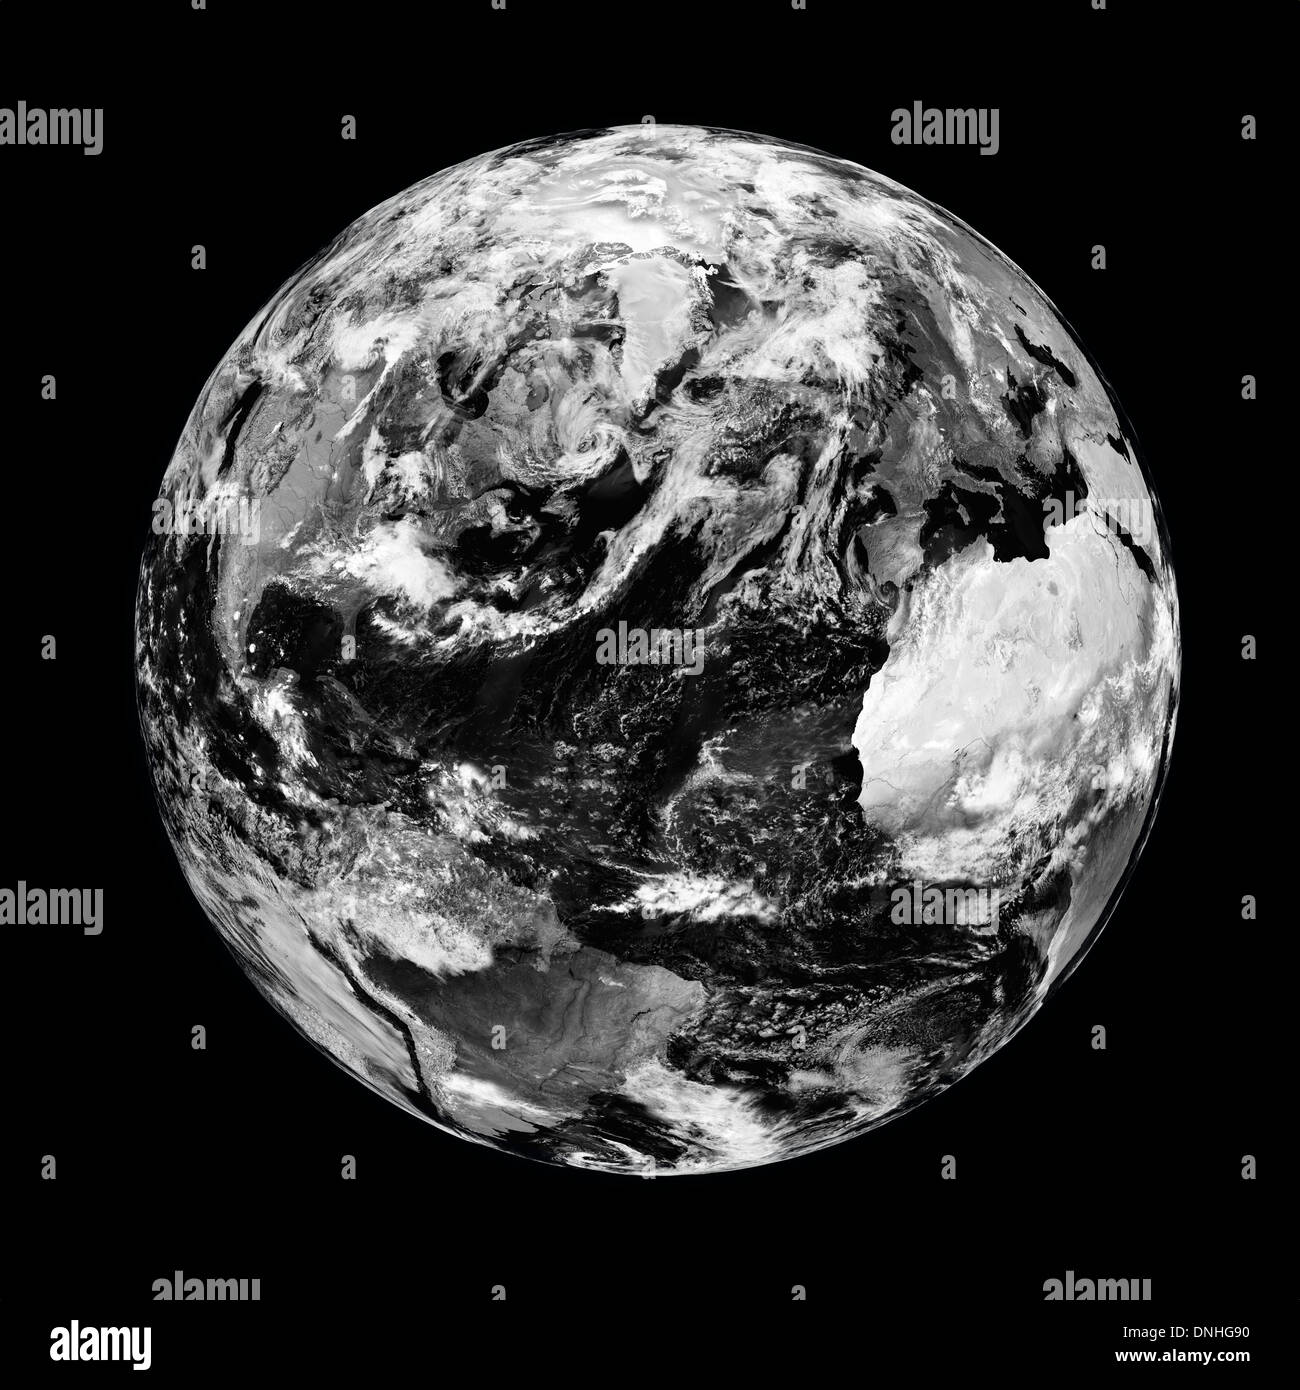 Black planet Earth with clouds isolated on black background. Elements of this image furnished by NASA. - Stock Image